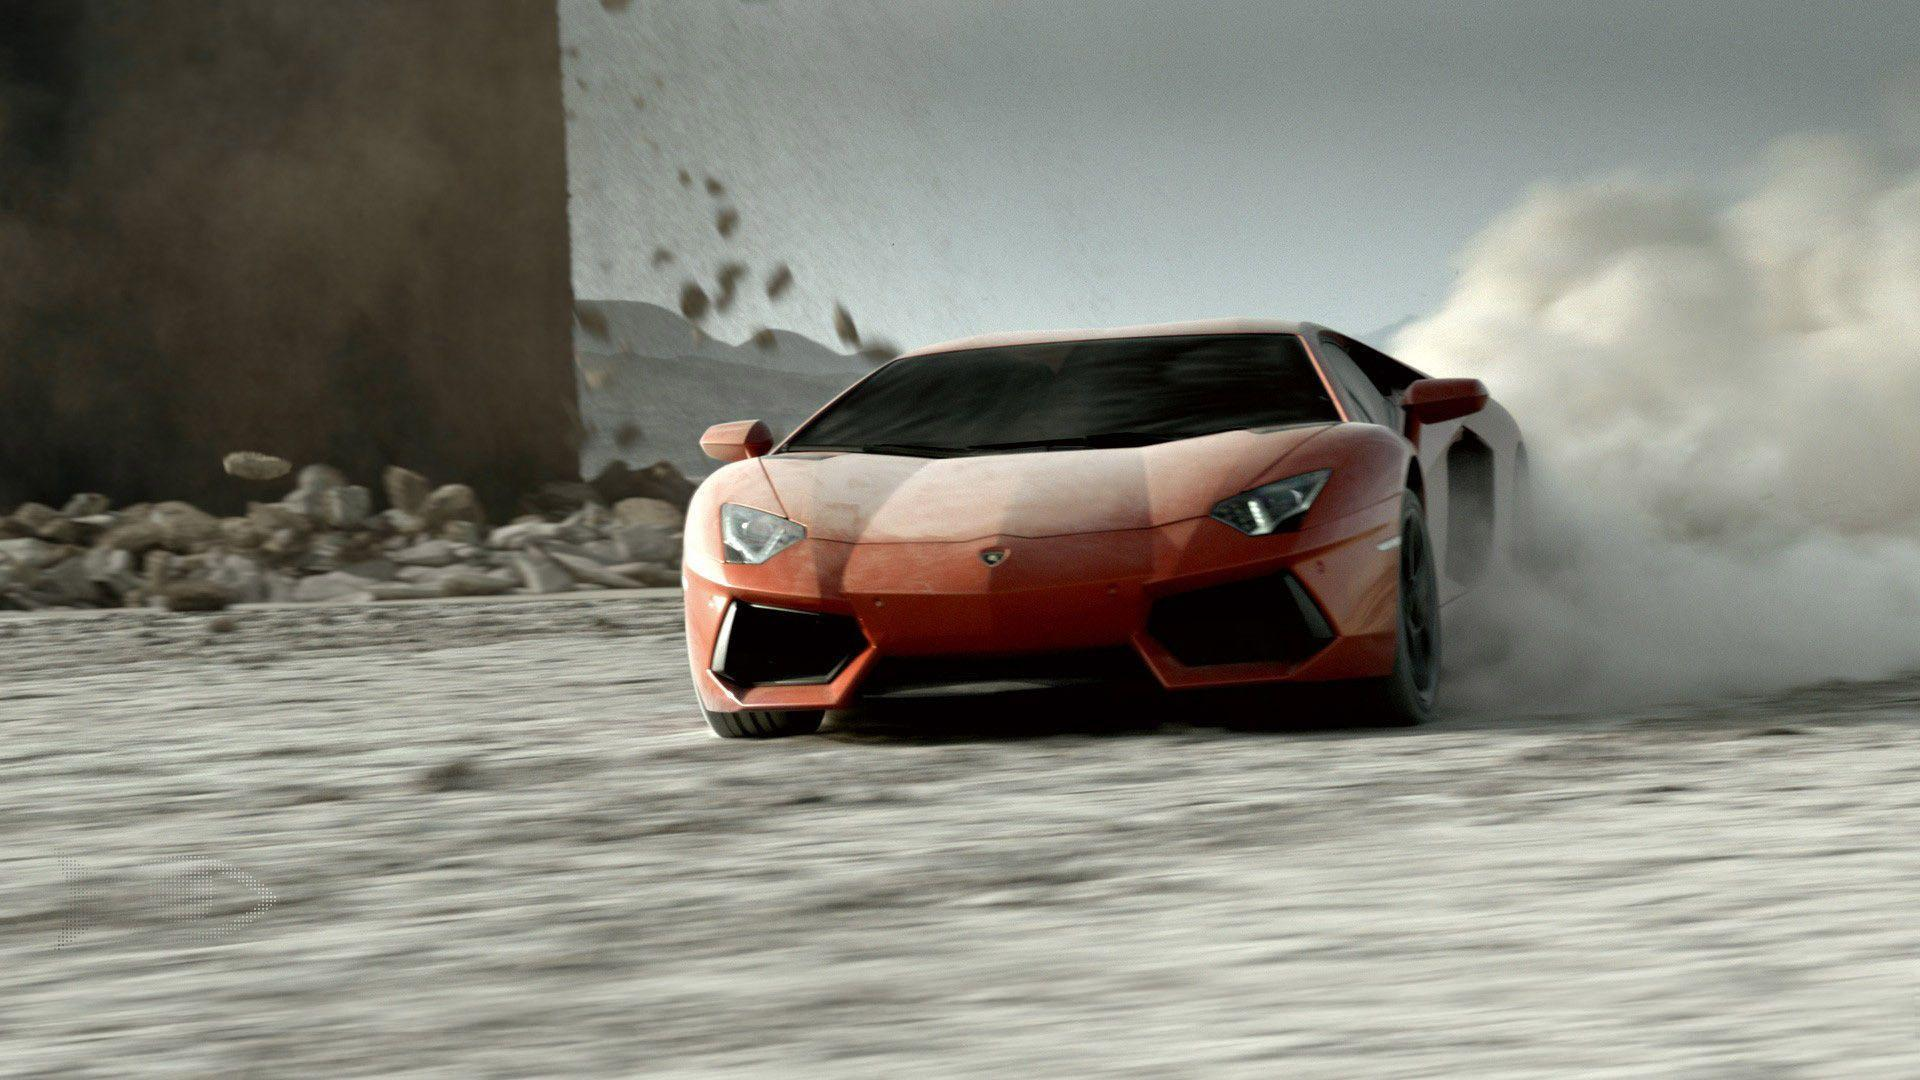 Lamborghini Aventador Wallpapers - Wallpaper Cave